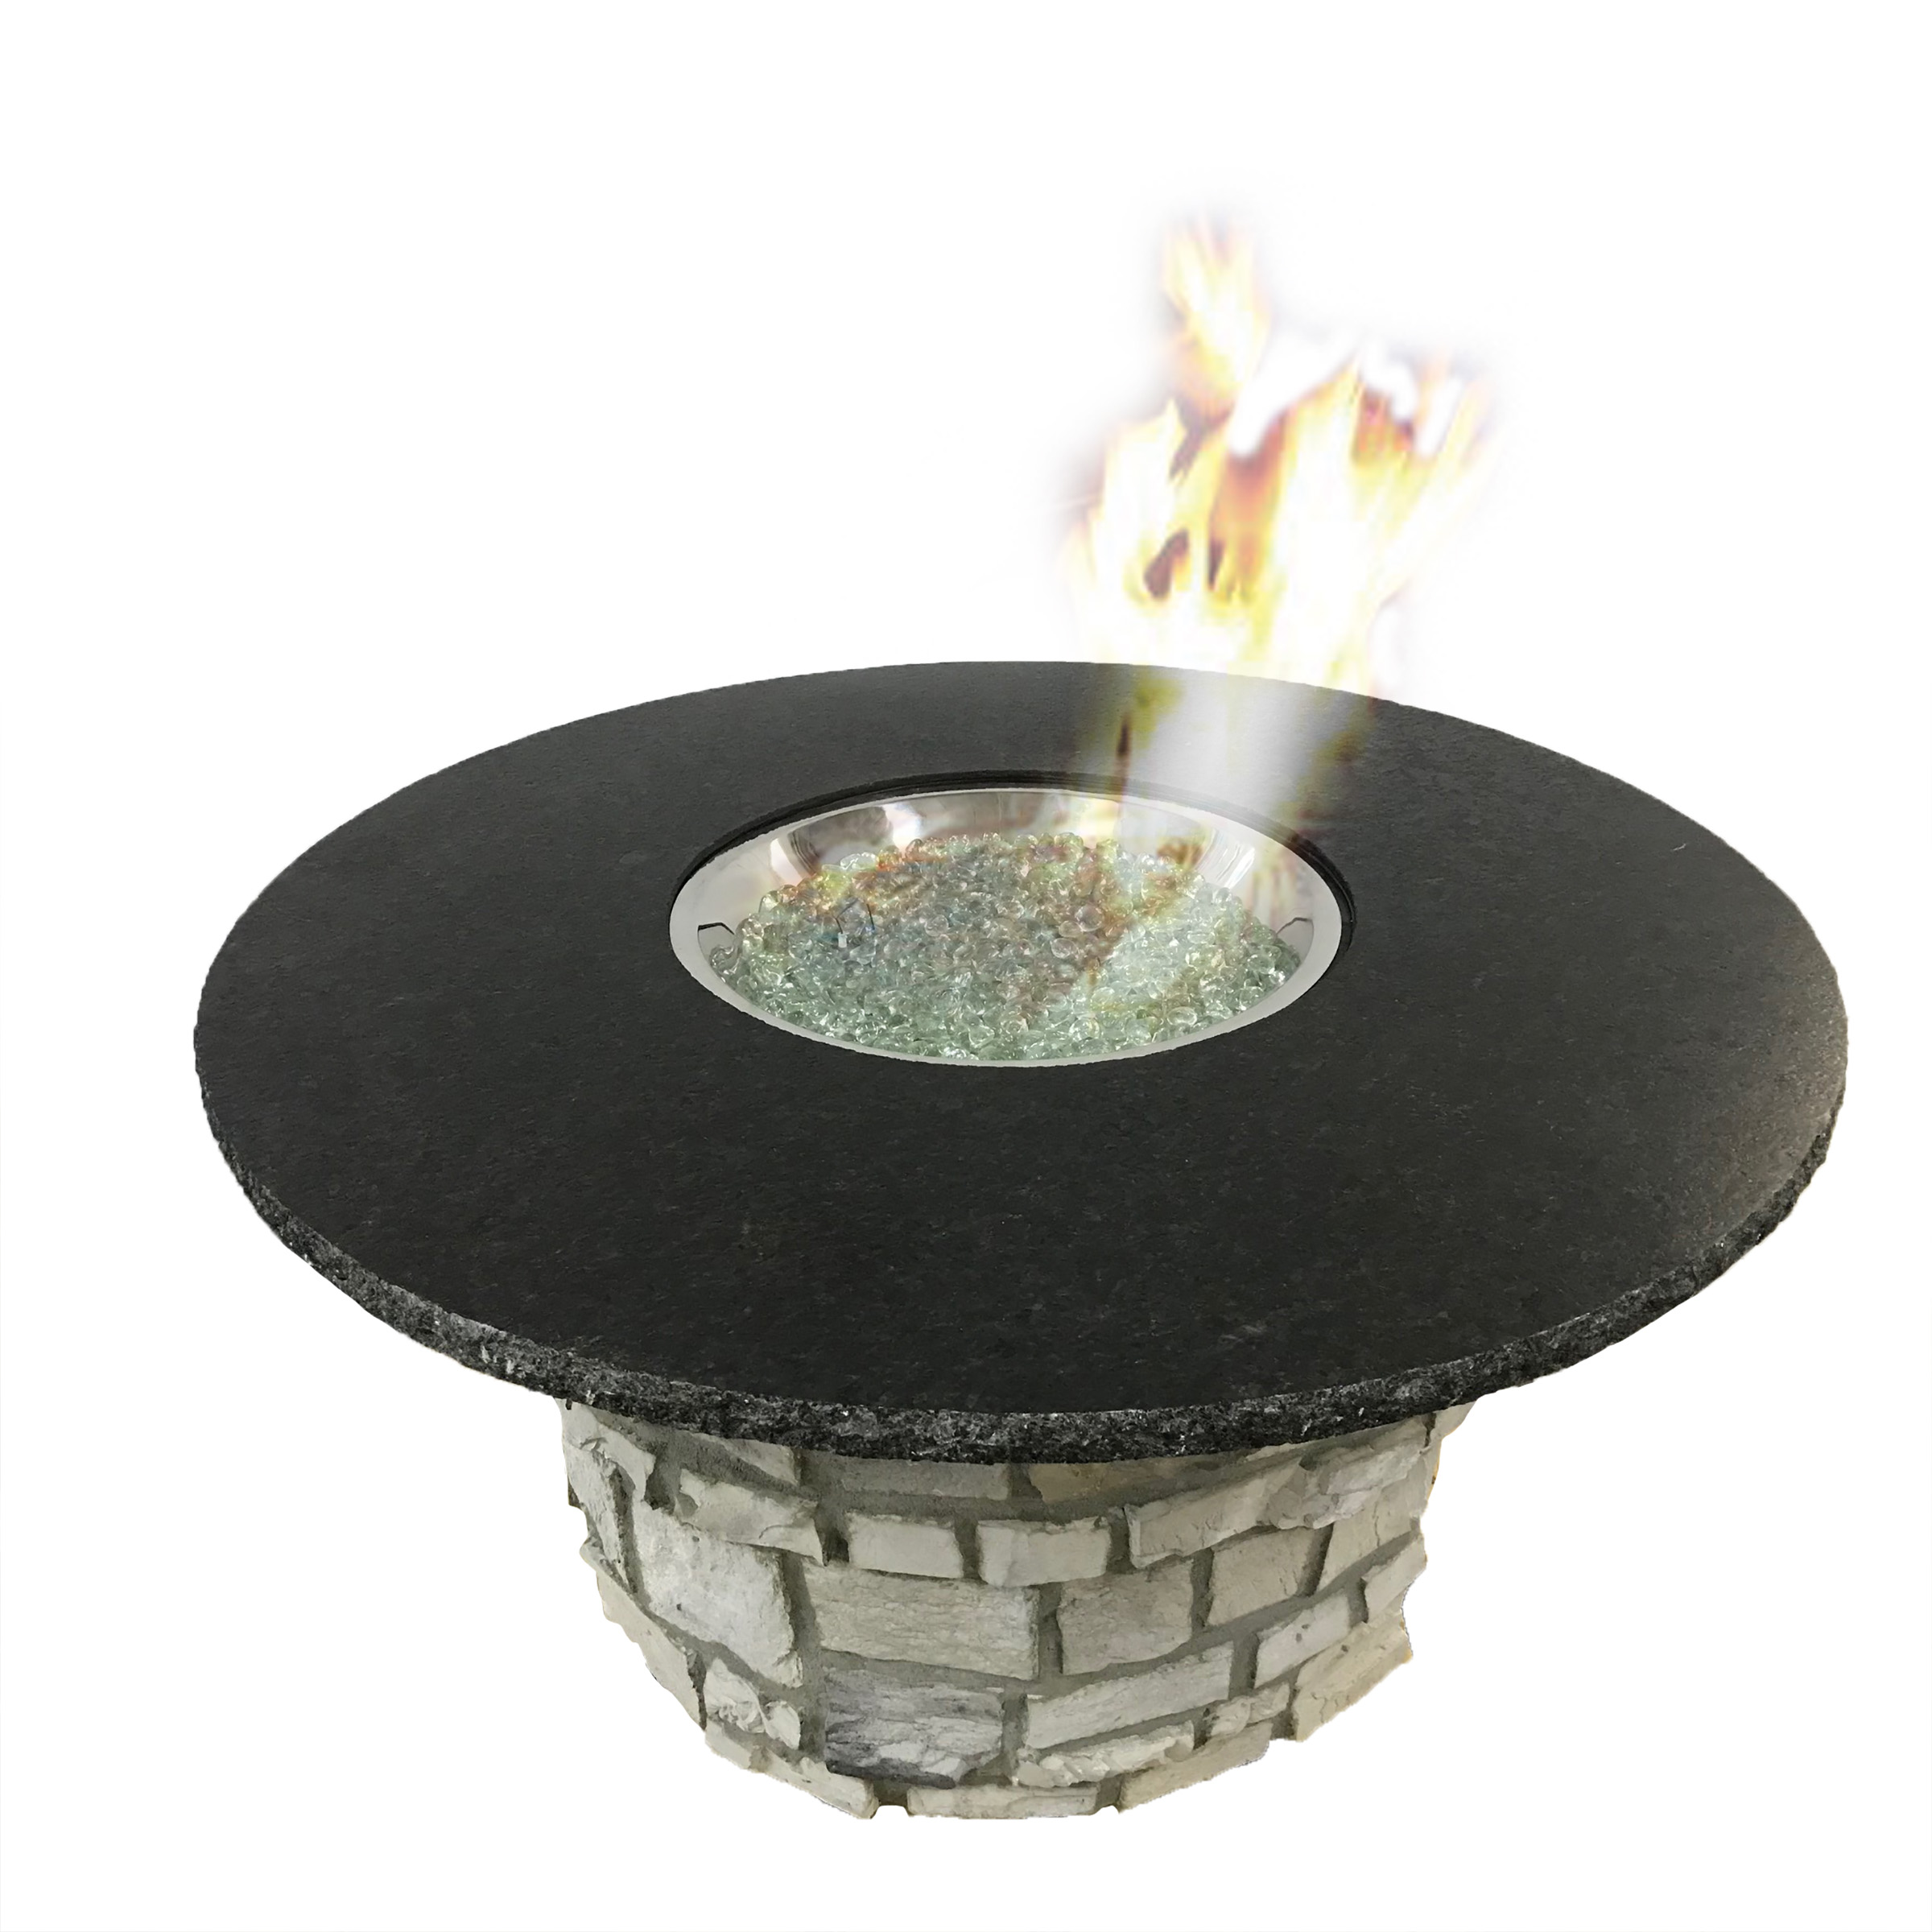 Fire Table - Gas fueled fire pits make a great centerpiece for conversations around a fire. Easy to set up and use. Fueled from LP tank or Natural Gas line. ThePowerful 60,000 BTU round fire pit is made from commercial quality stainless-steel and is controlled by a key valve with spark ignition.